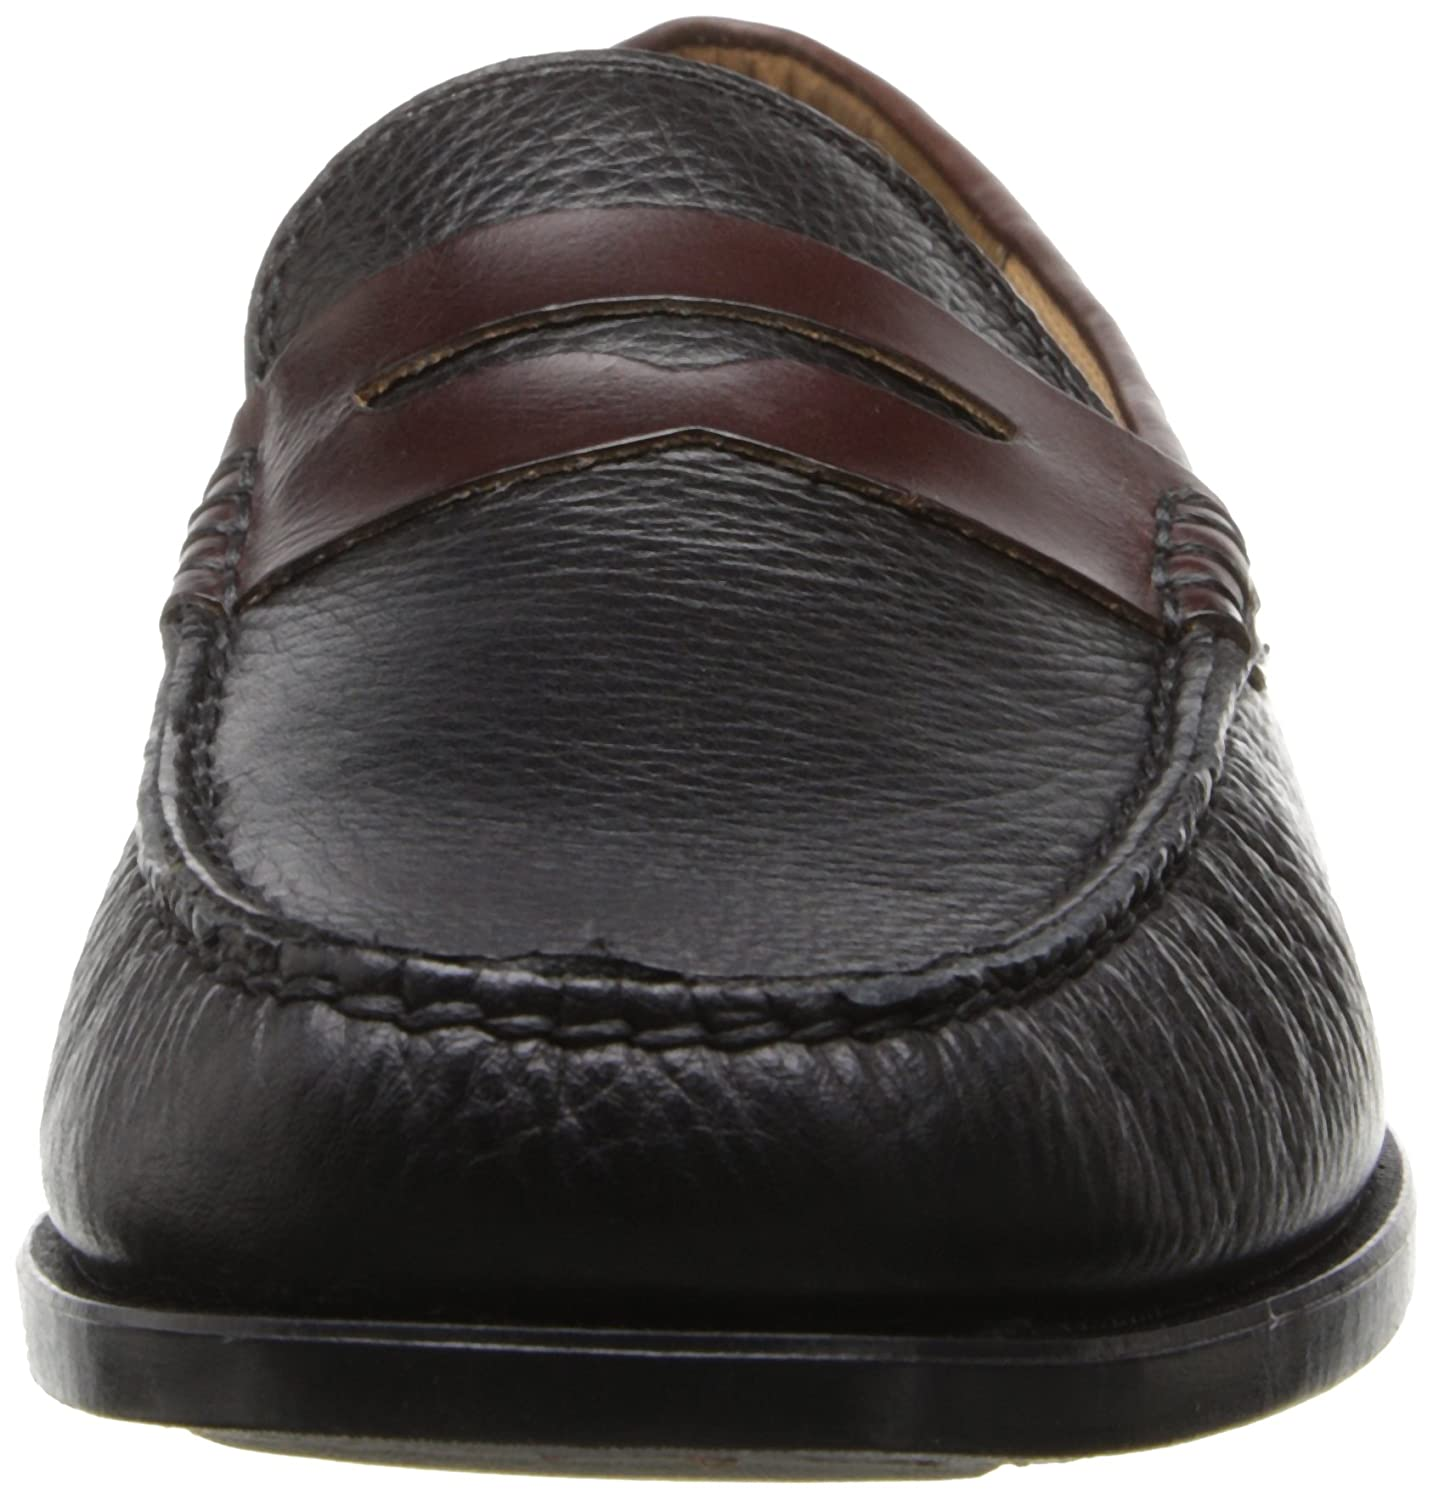 Florsheim Mens Cricket Penny Loafer